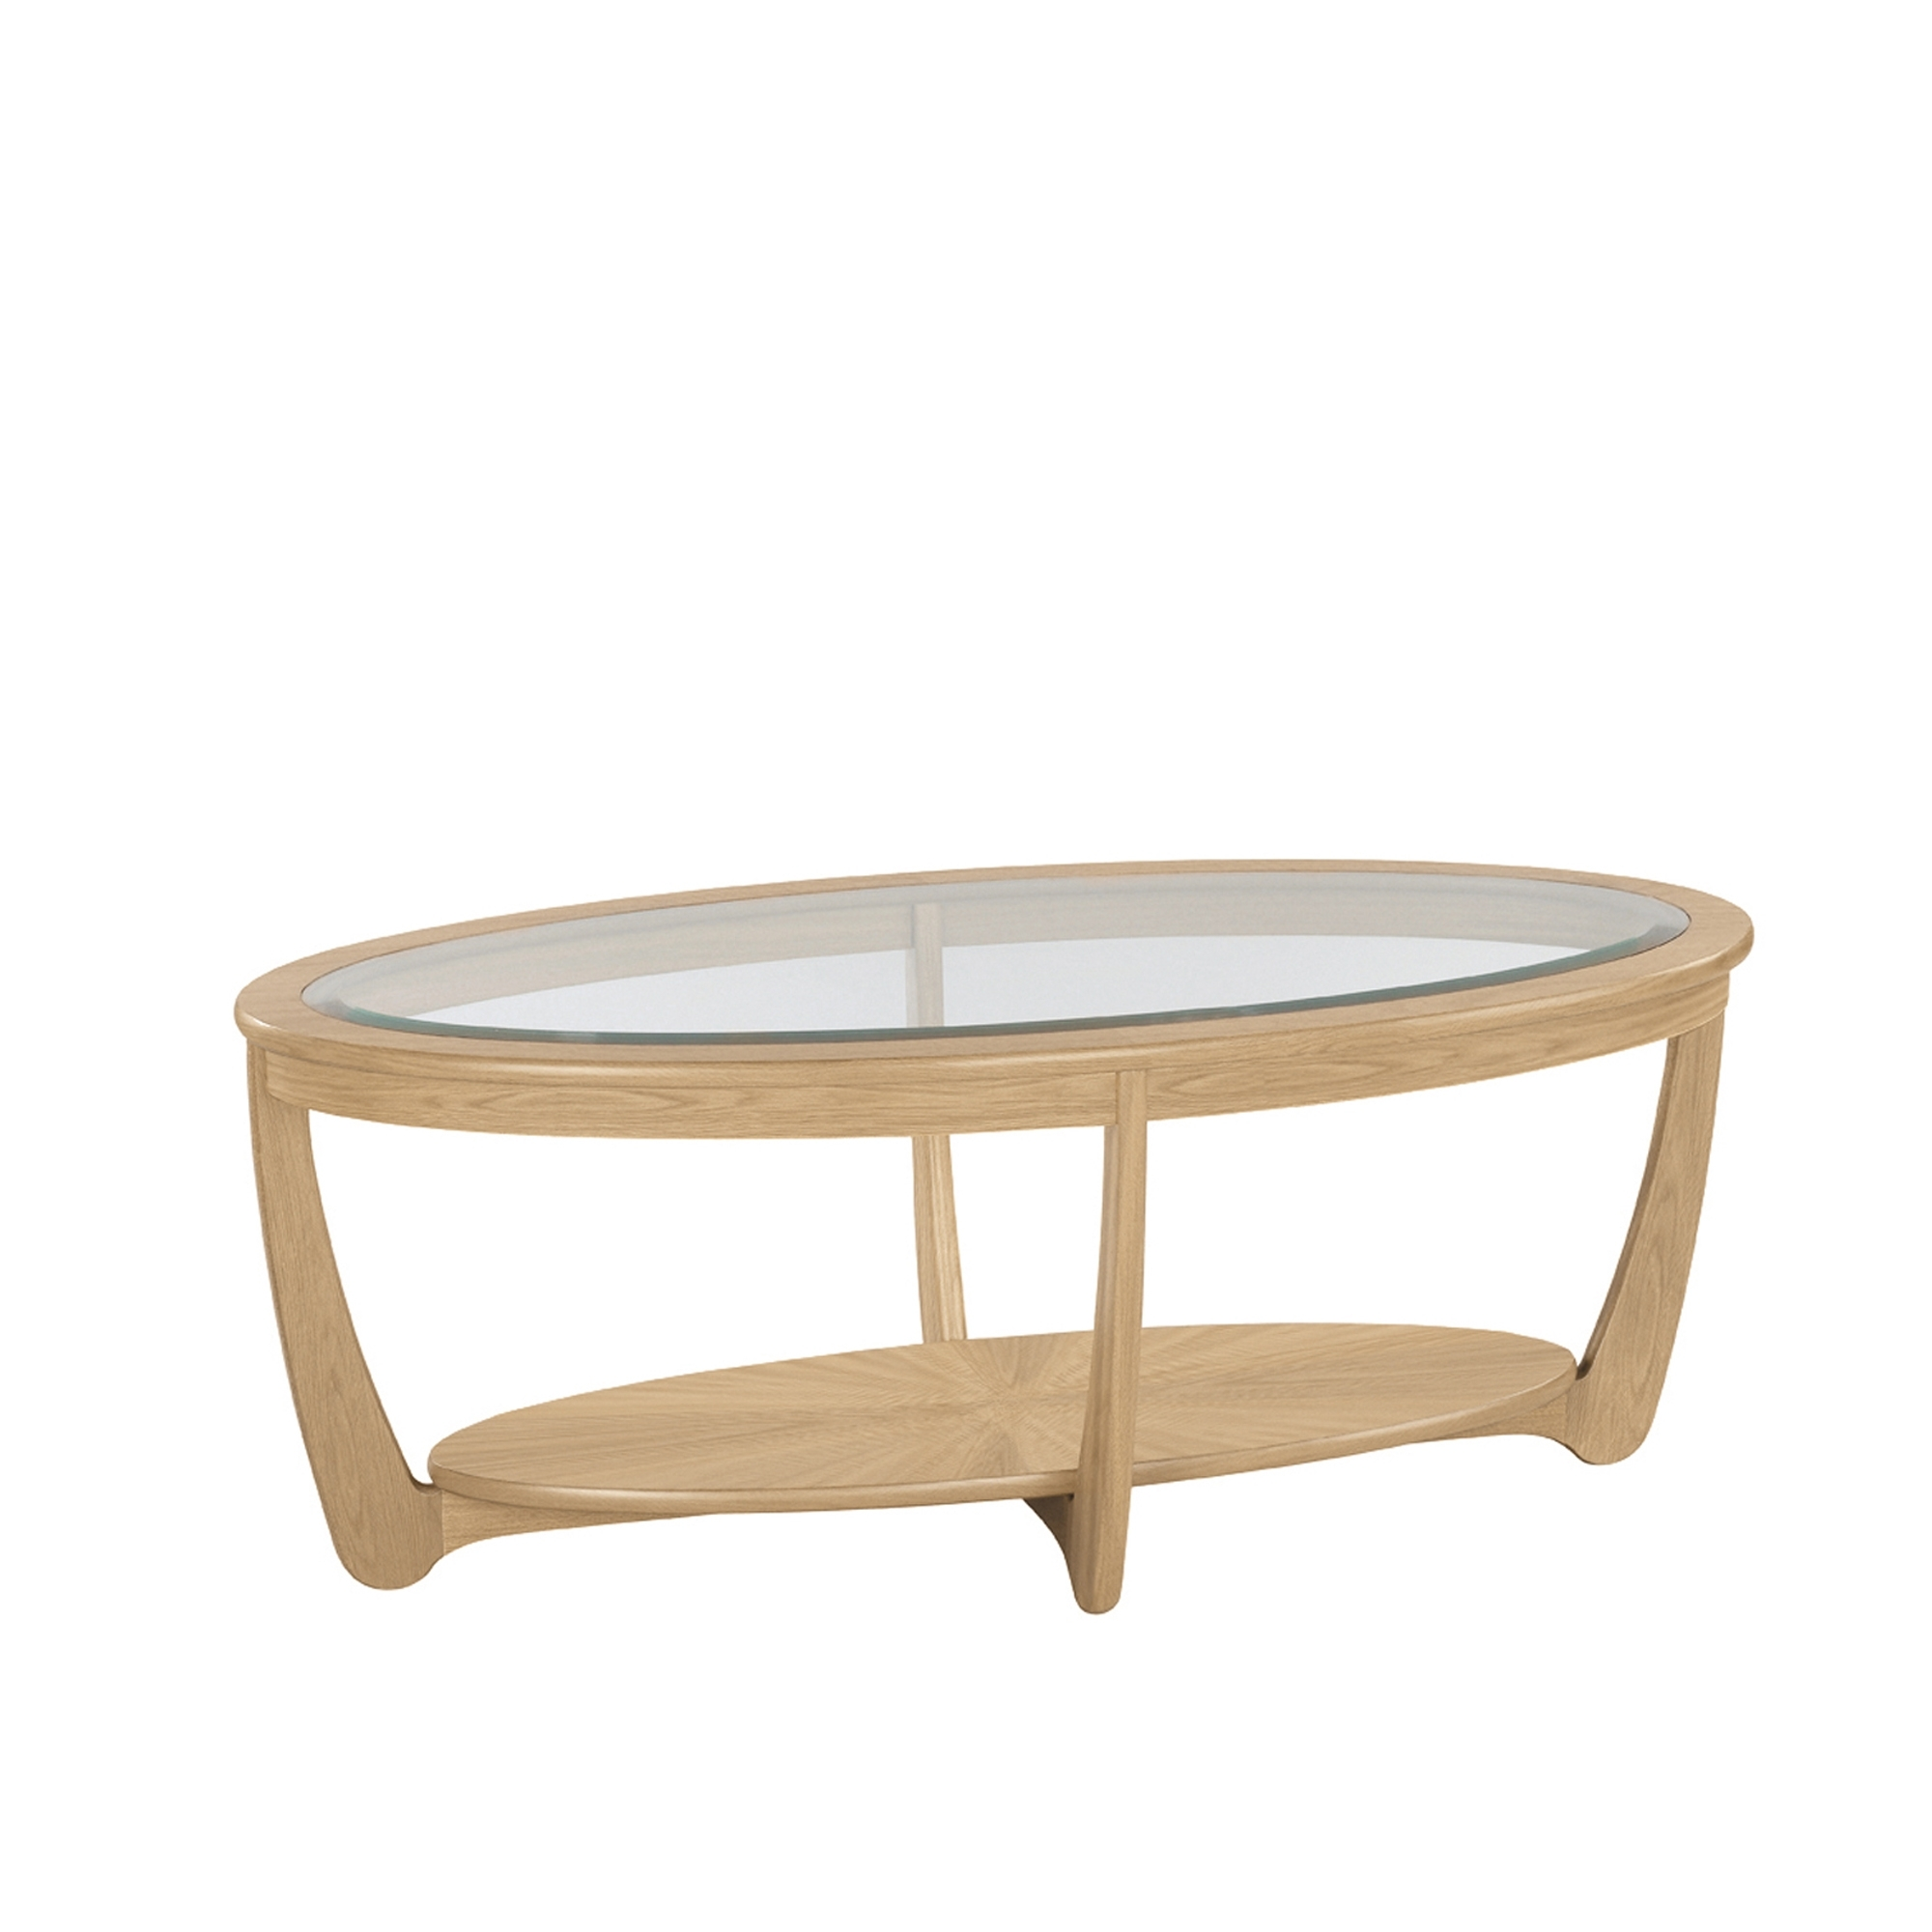 Nathan shades oak glass top oval coffee table coffee tables cookes furniture Glass top for coffee table